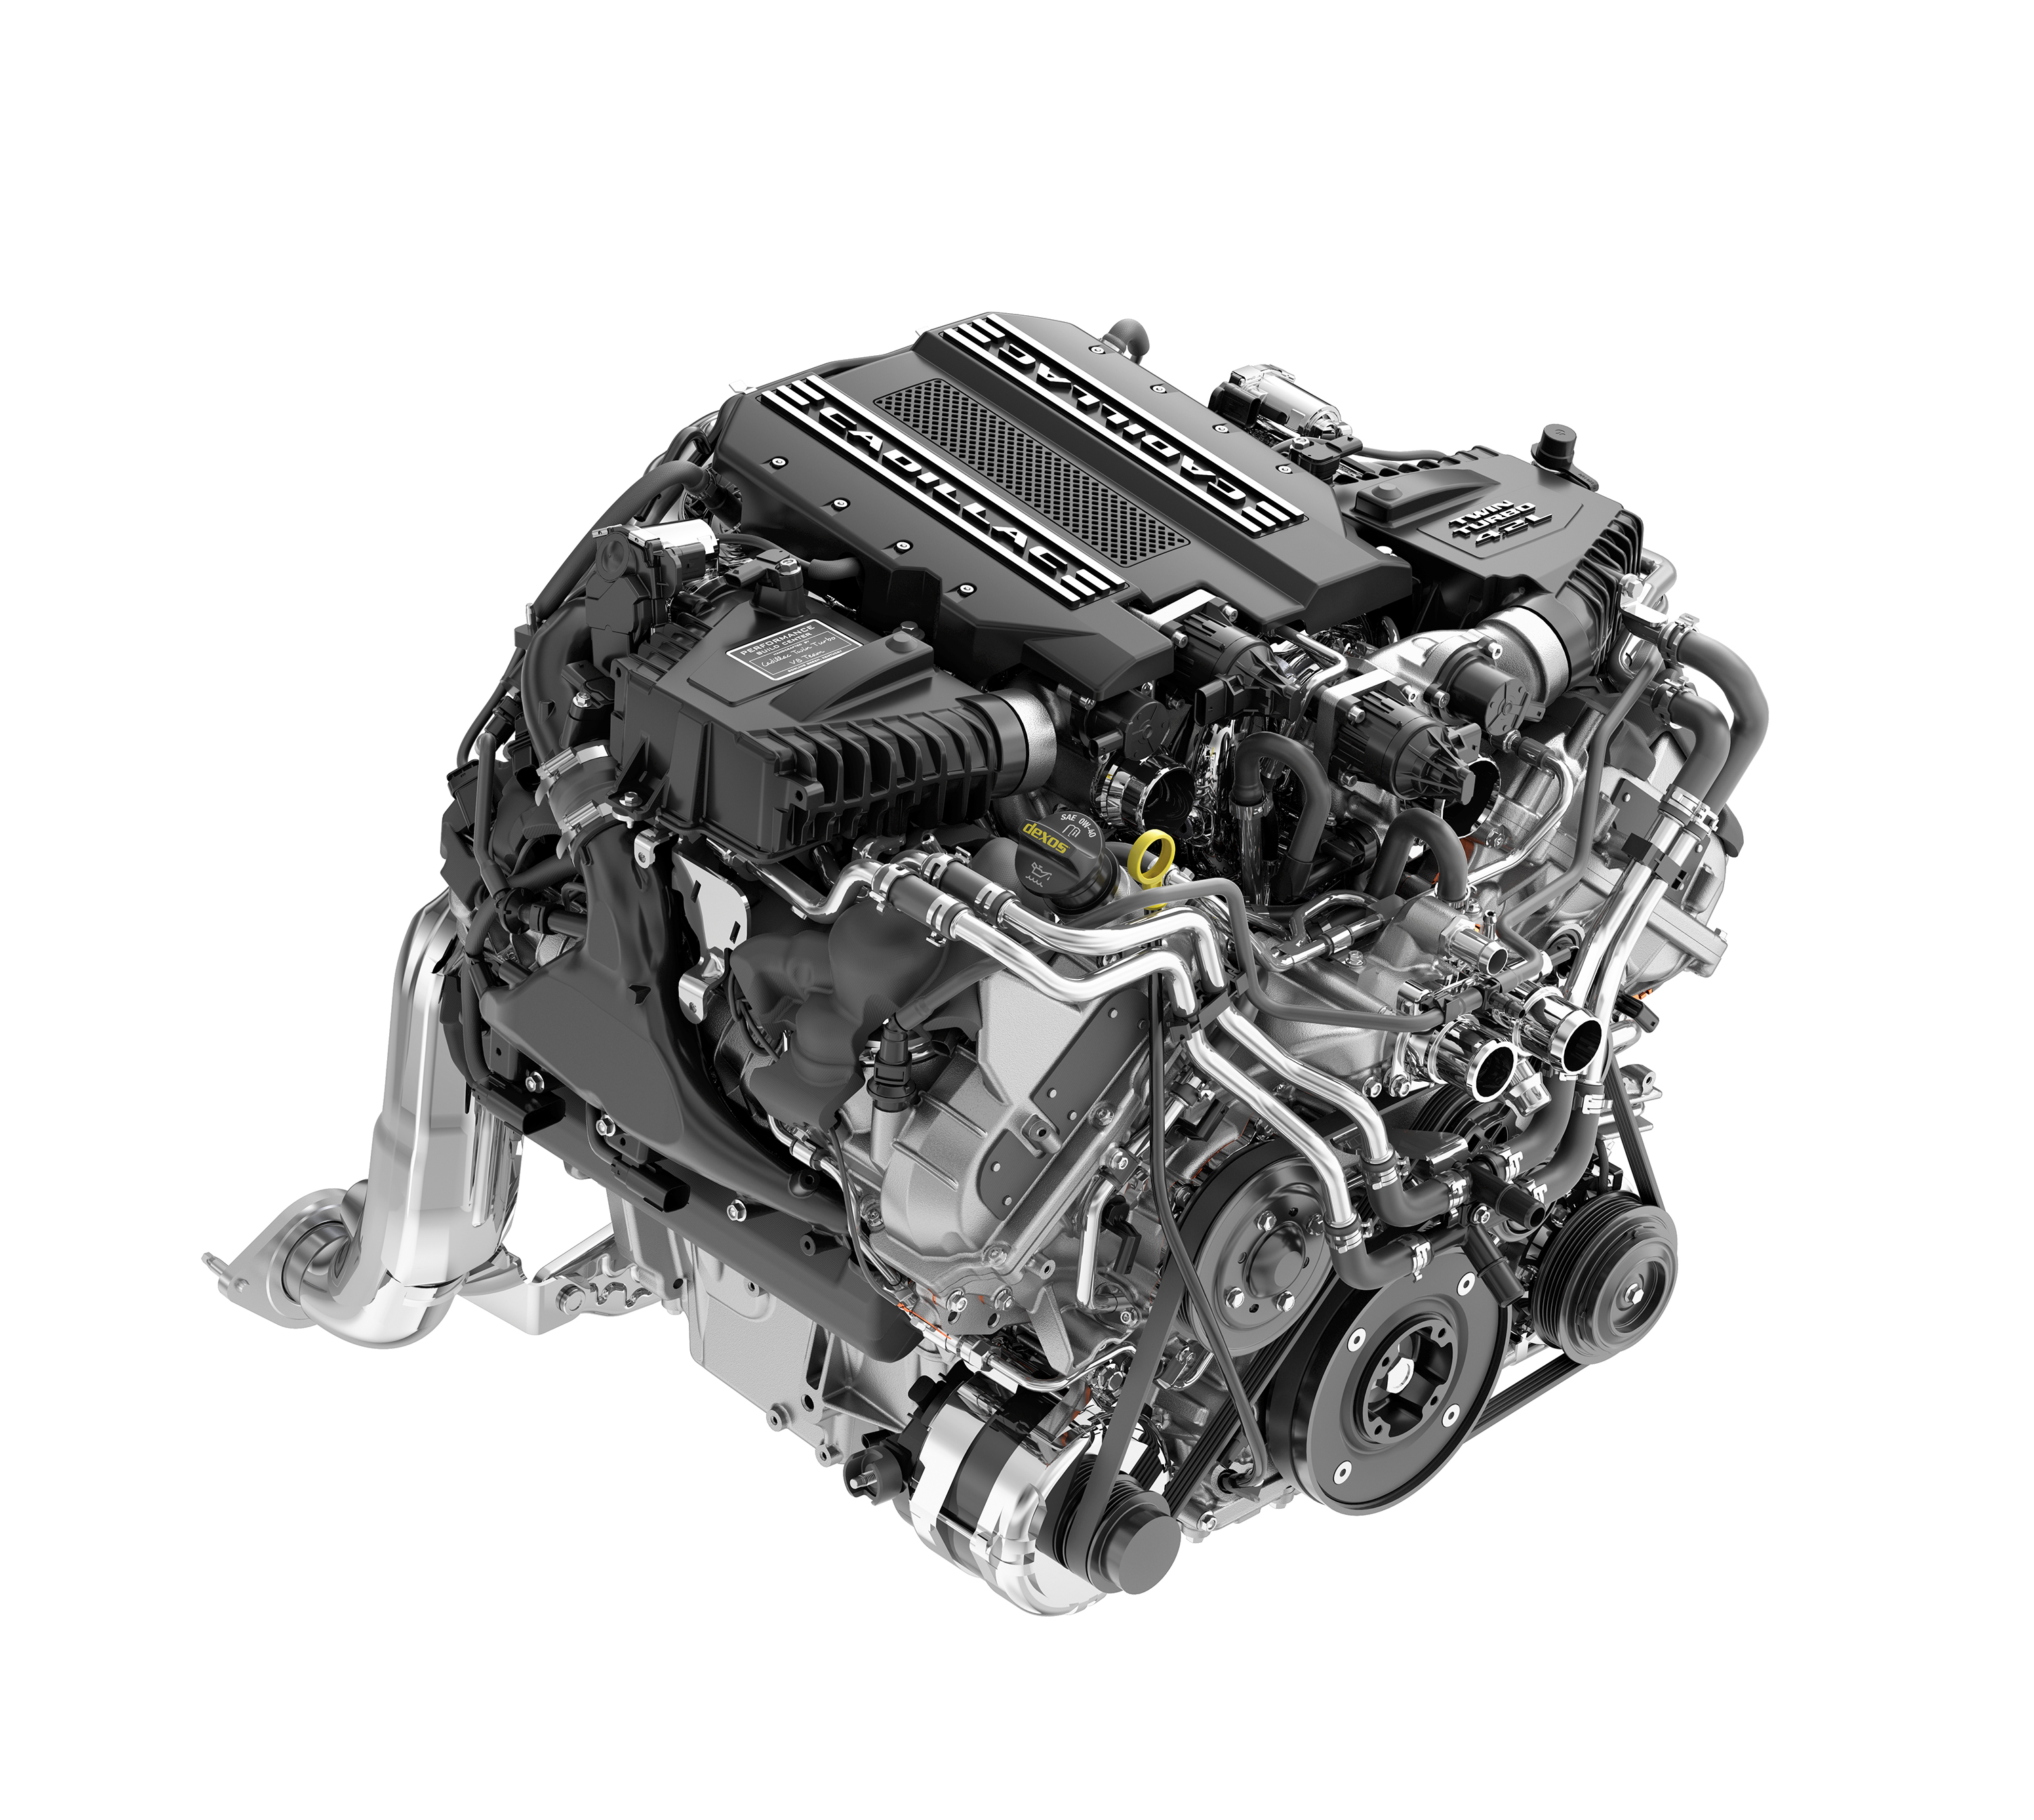 The Cadillac Ct6 V Sport Will Be Powered By An All New Twin Turbo V8 1949 Engine